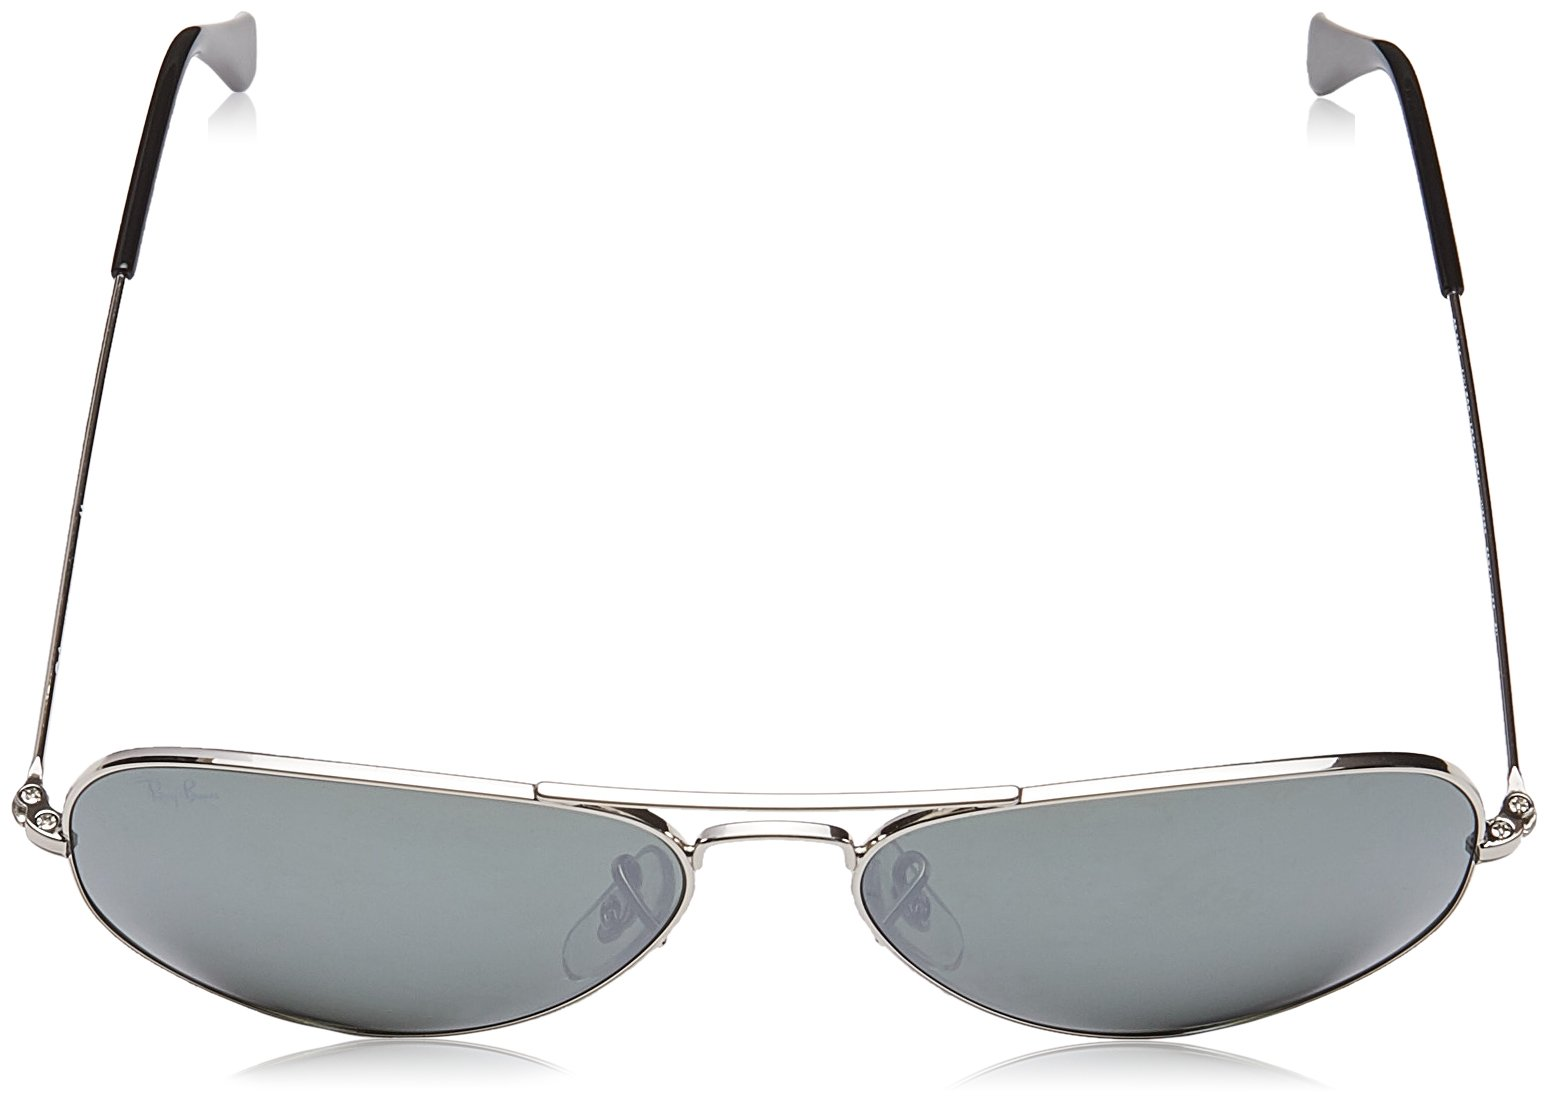 Ray-Ban 3025 Aviator Large Metal Mirrored Non-Polarized Sunglasses, Silver/Silver Mirror (W3277), 58mm by Ray-Ban (Image #4)